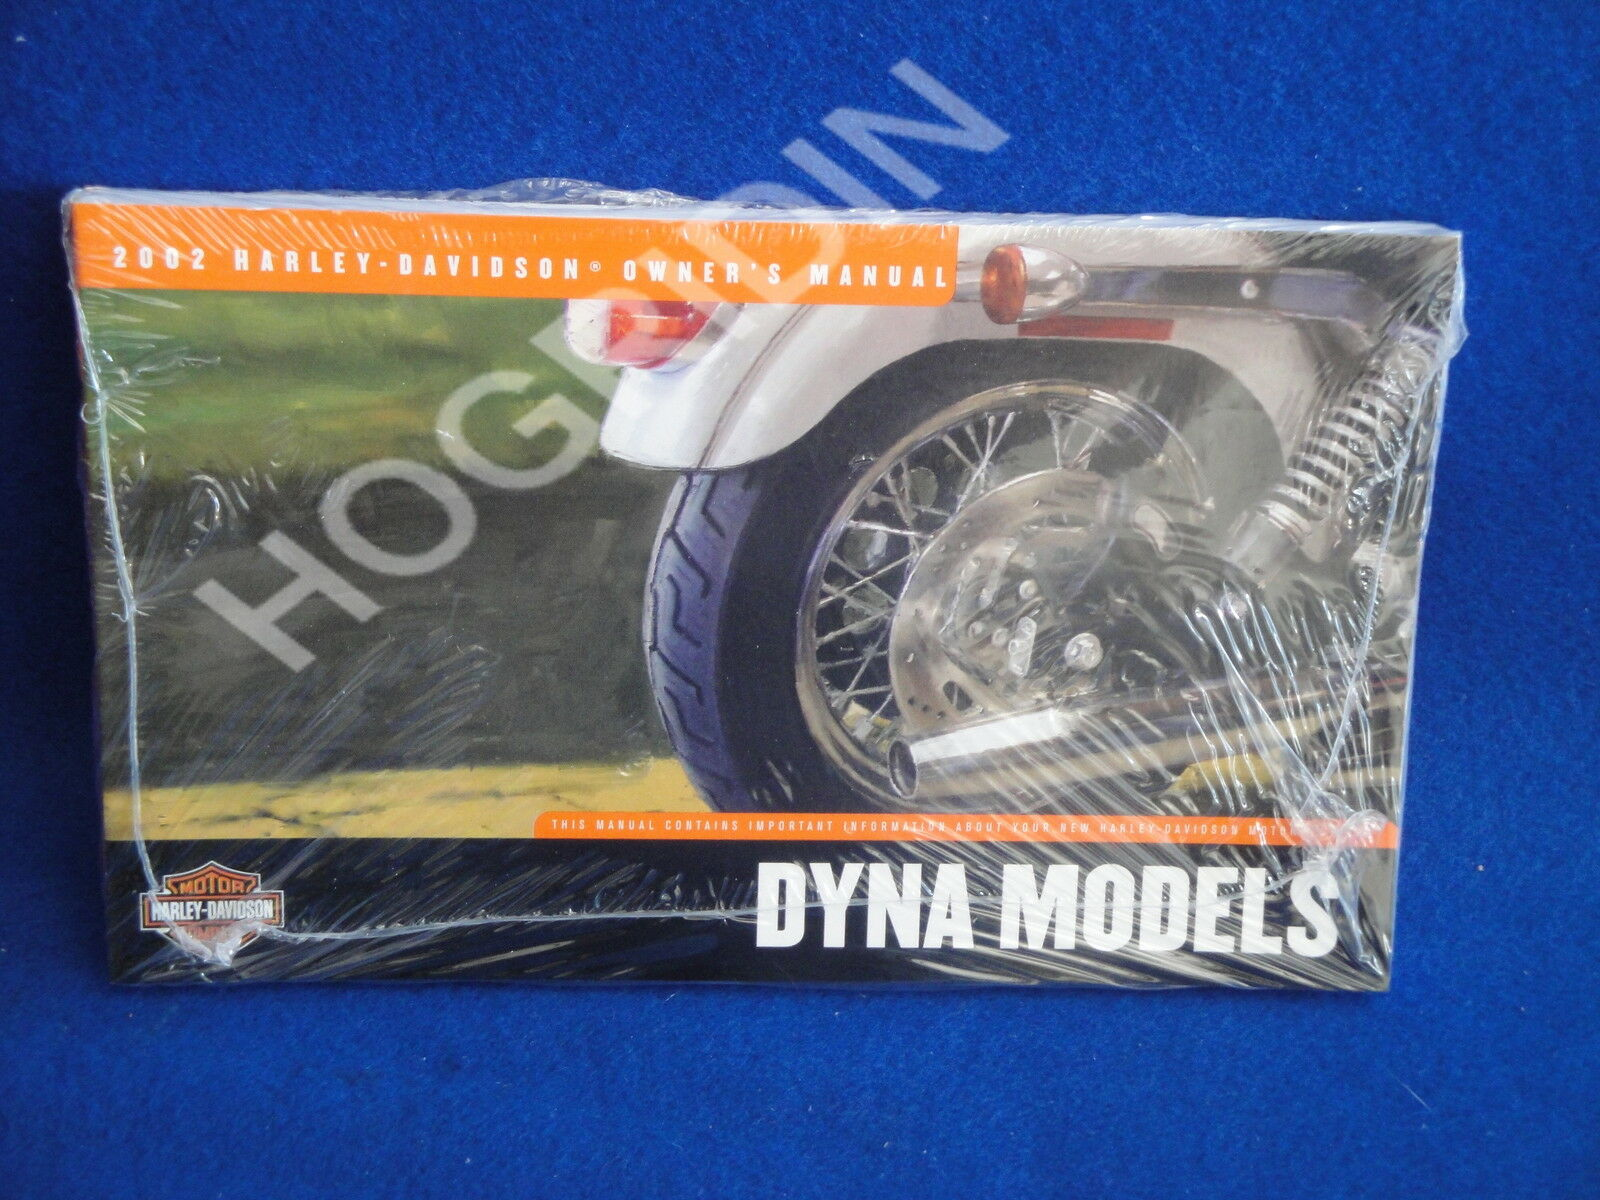 2002 Harley Davidson dyna fxd wide glide low rider super glide owners manual  1 of 1Only 2 available ...